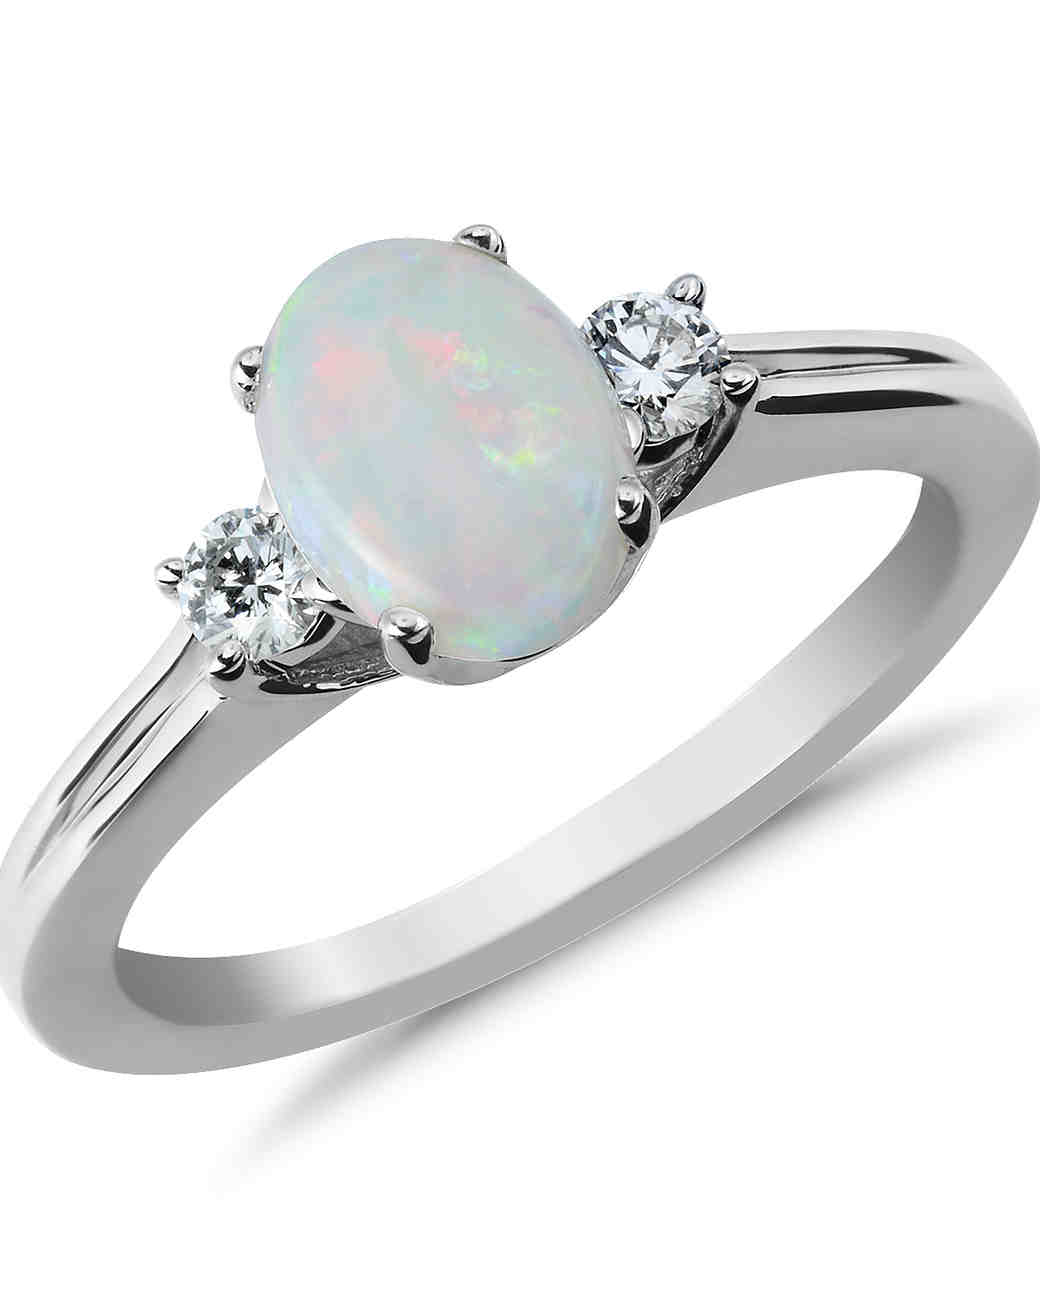 Opal Engagement Rings That Are Oh-So Dreamy | Martha Stewart Weddings